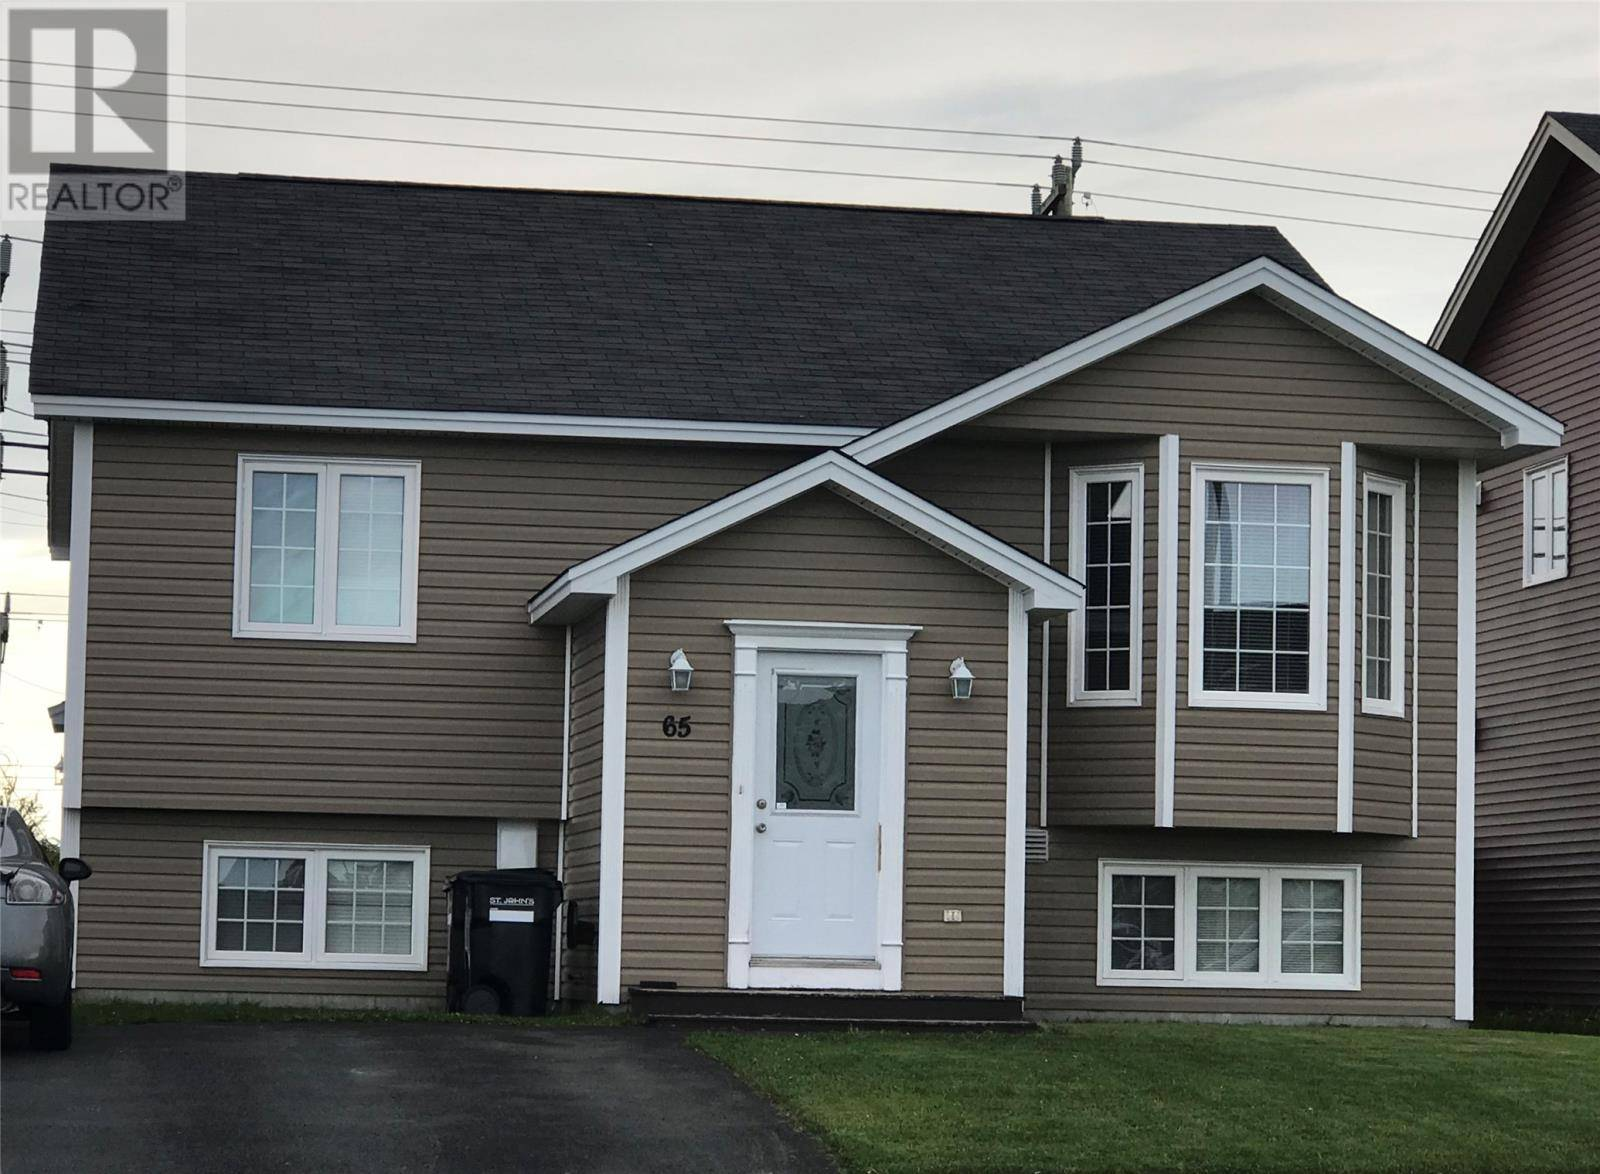 House for sale at 65 Ladysmith Dr St. John's Newfoundland - MLS: 1209123